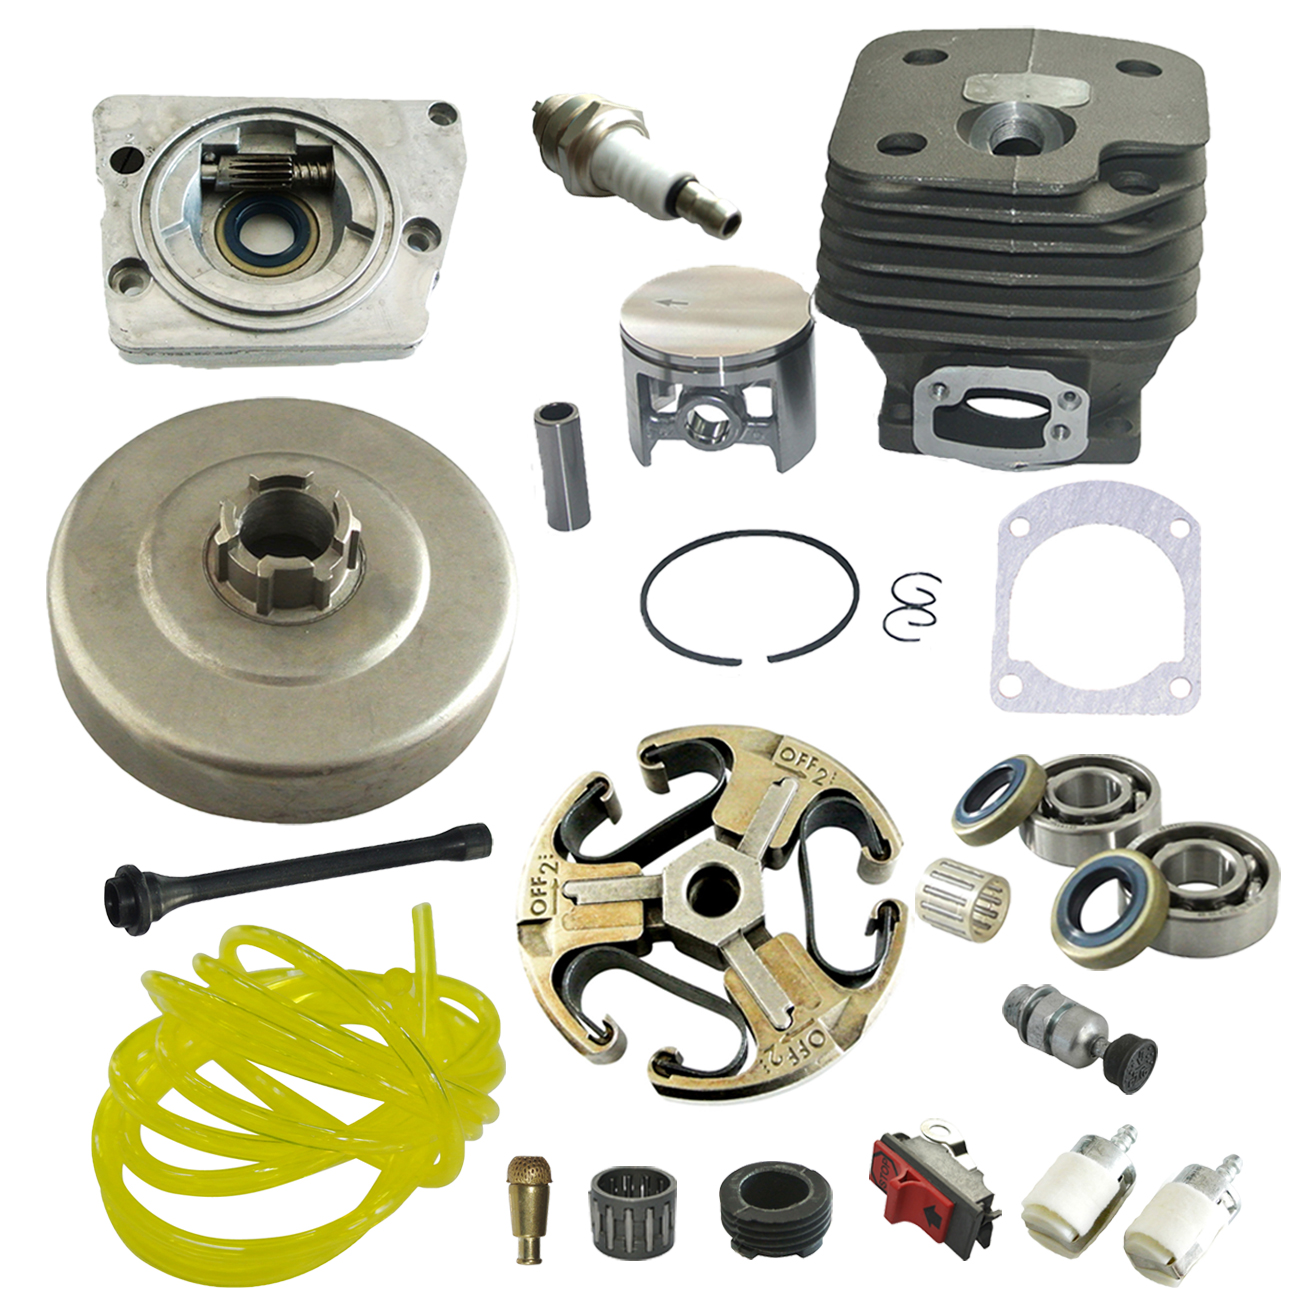 52mm Piston & Clutch Drum & Oil Pump & Cylinder Kit Fits For HUSQVARNA 268 272 Chainsaw 52mm cylinder barrel & piston assembly fits husqvarna 268 272 chainsaw part